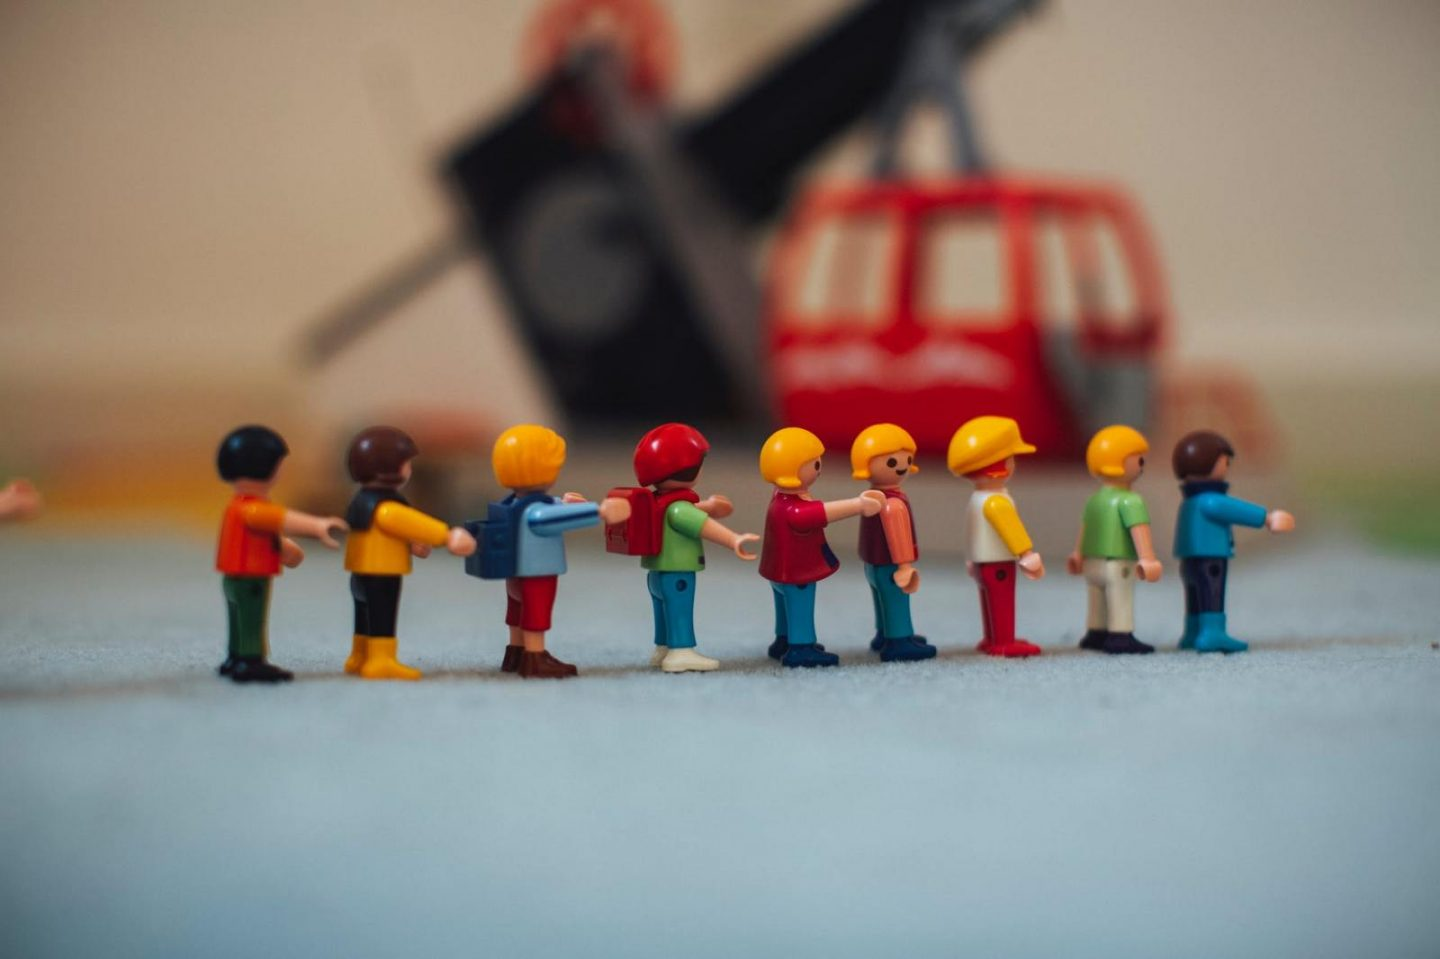 photo of lego toy miniatures